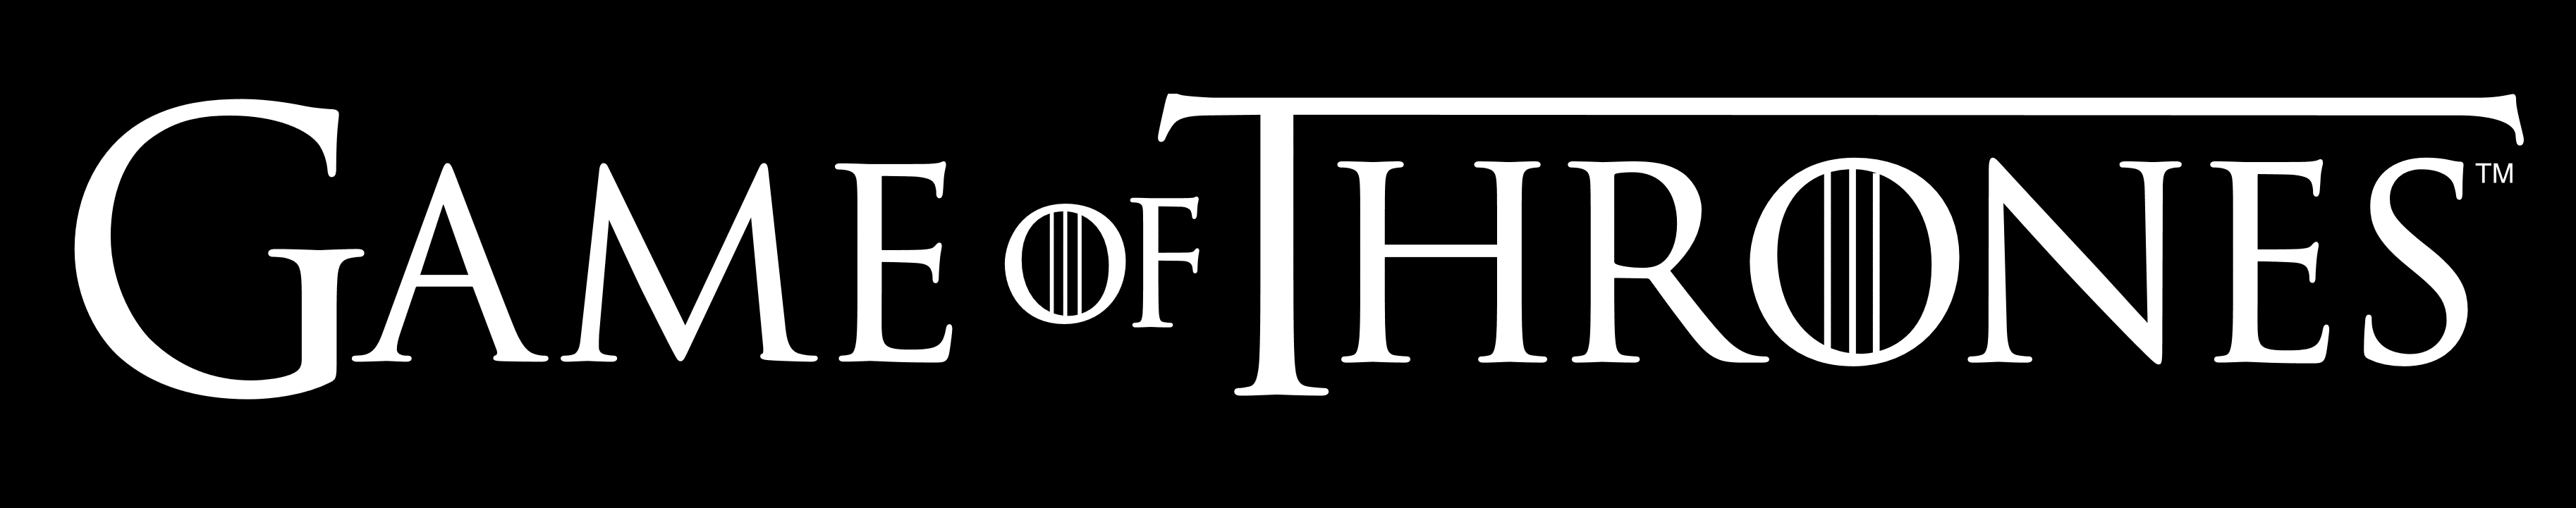 Game Of Thrones Logo PNG - 29659